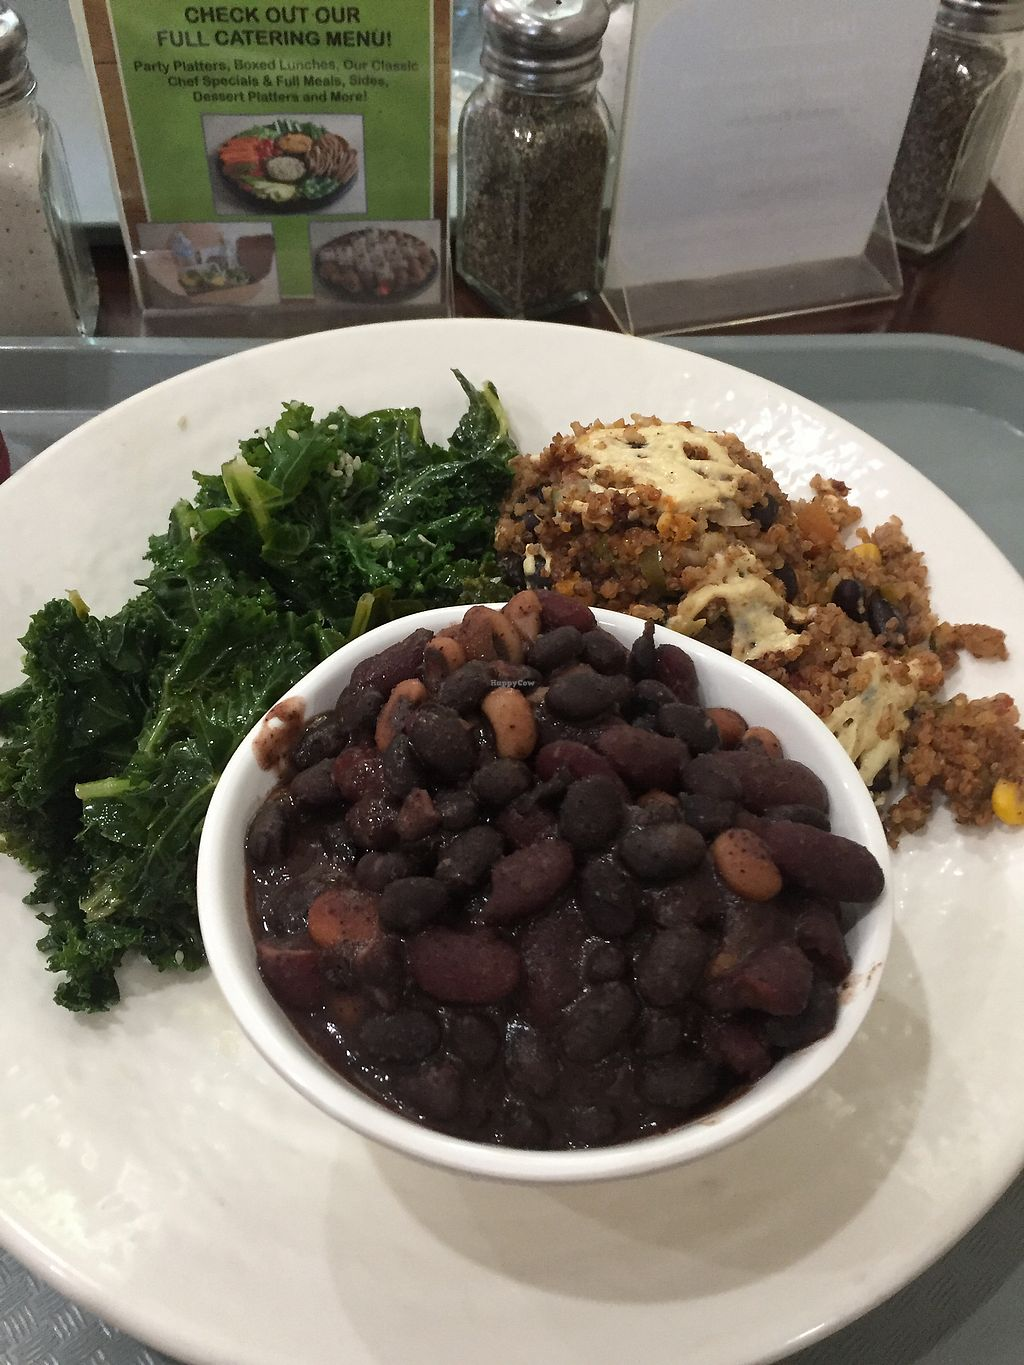 """Photo of Sunflower Cafe  by <a href=""""/members/profile/R-MV"""">R-MV</a> <br/>Kale, mixed beans, and quinoa bake <br/> July 29, 2017  - <a href='/contact/abuse/image/35881/286351'>Report</a>"""